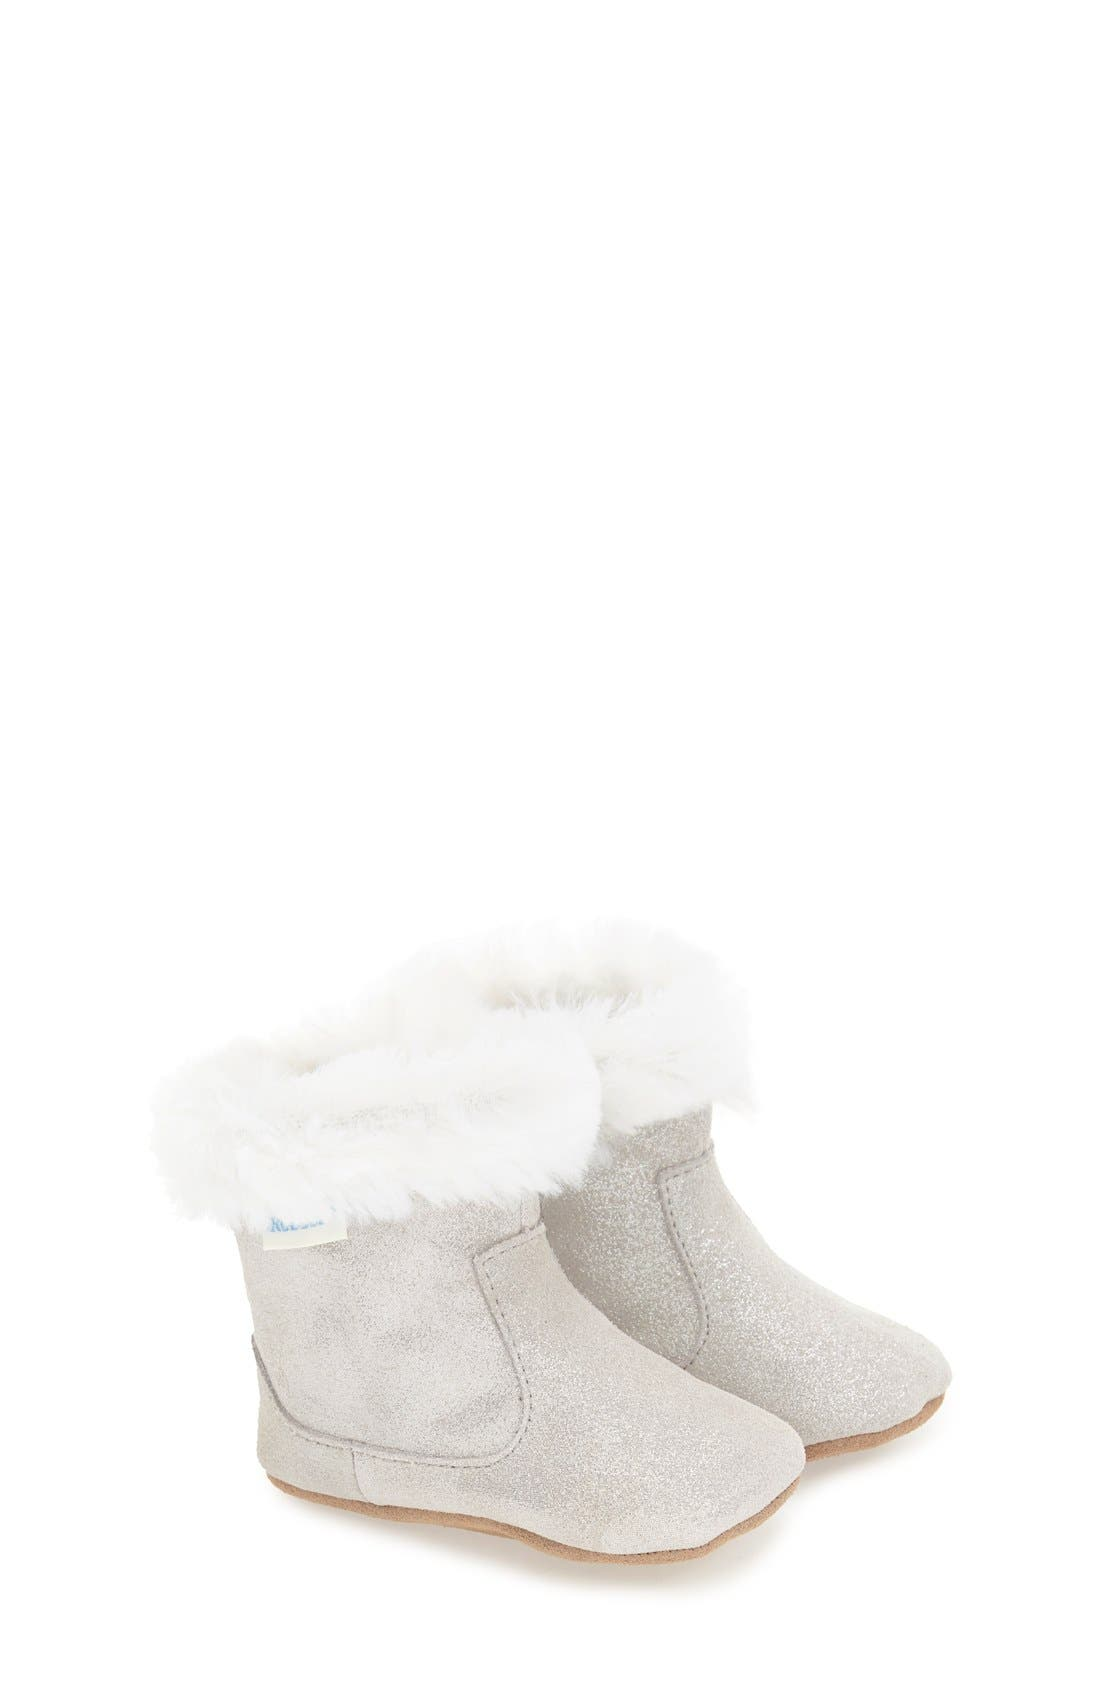 'Thea Twinkle' Bootie,                         Main,                         color, Grey Sparkle Suede